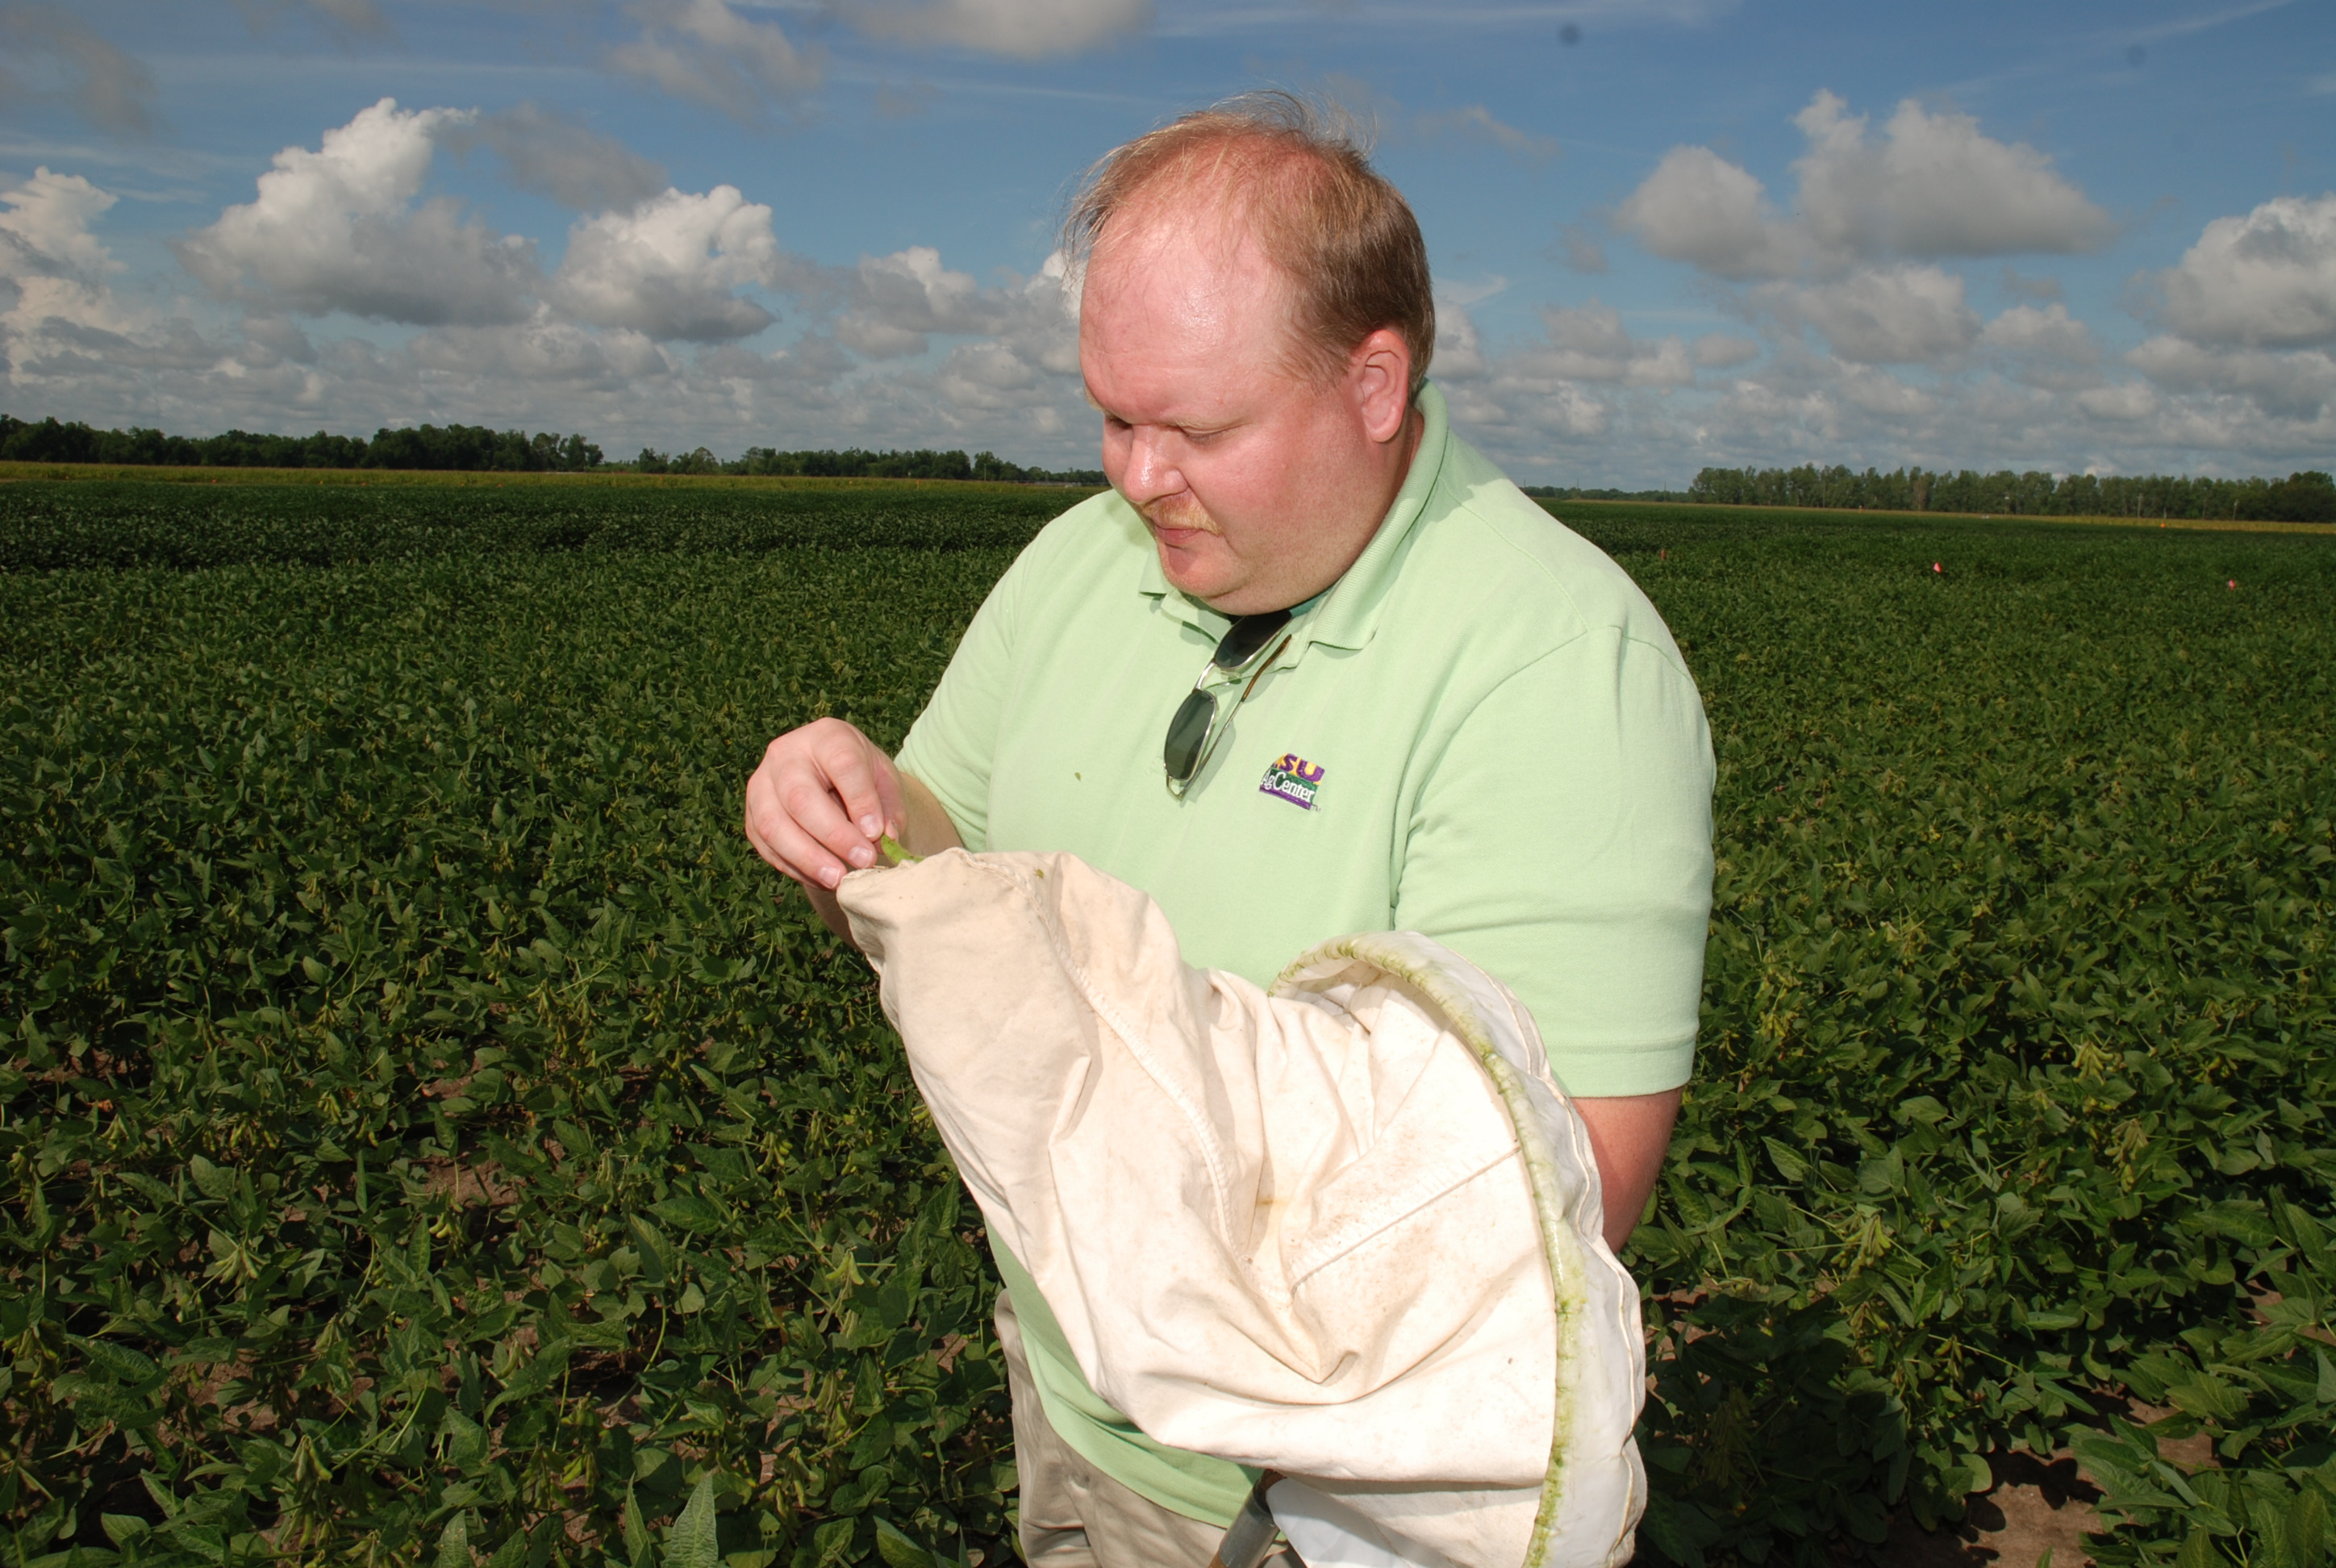 Jeff Davis scouting for stink bugs